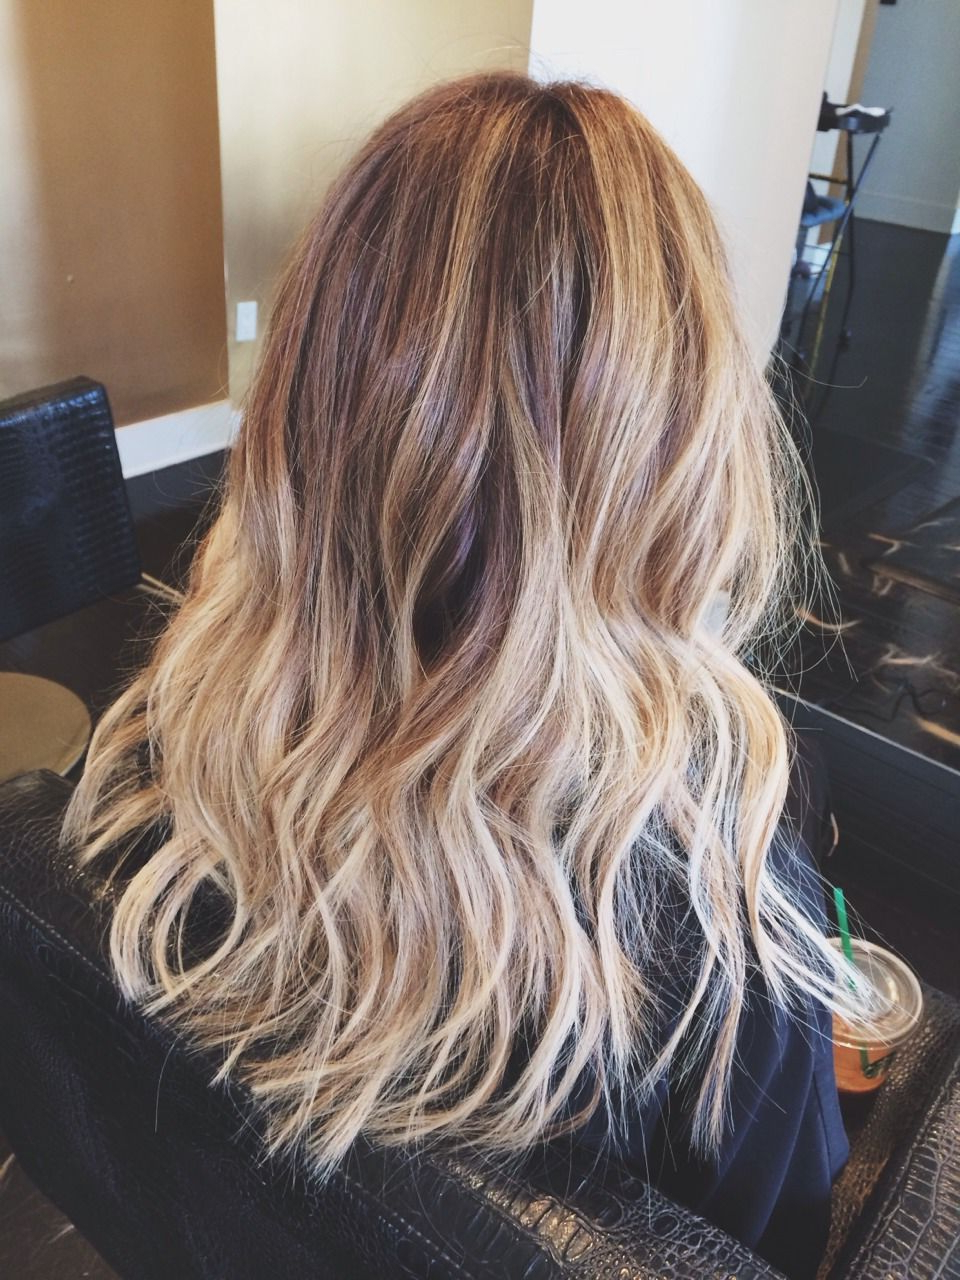 My Blonde/light Brown Ombré Hair With Beach Waves (View 14 of 20)